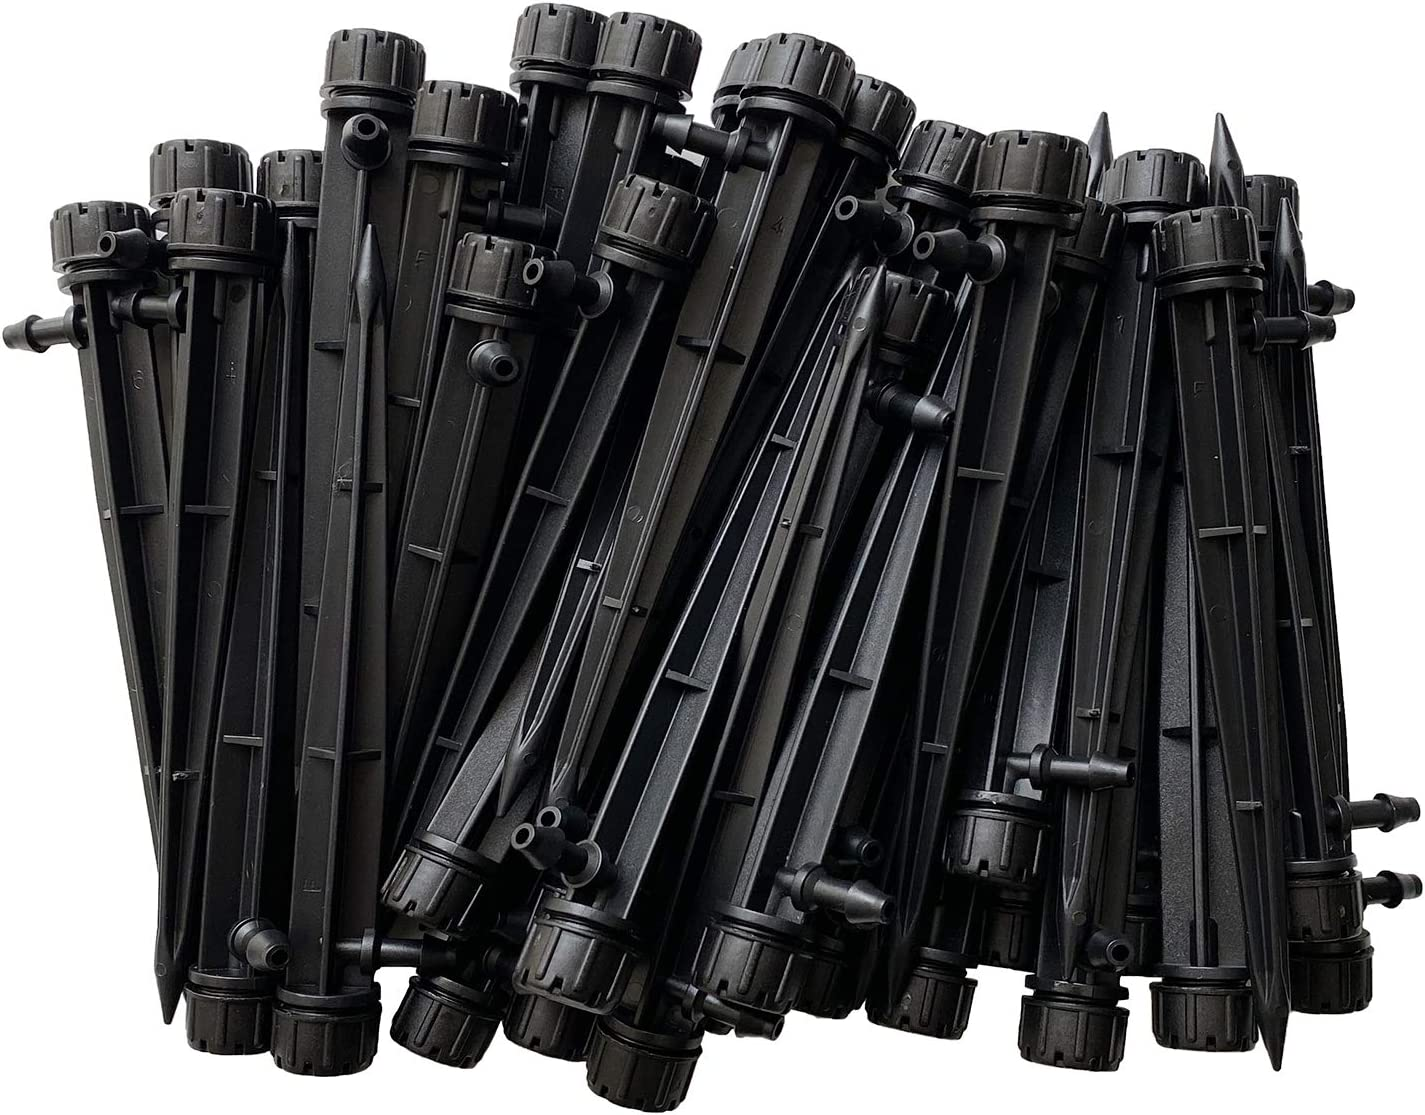 WANBAO 100 Pcs Drip Emitters Sprayer for 1/4 inch Irrigation Tube Hose, Adjustable 360 Degree Water Flow Irrigation Drippers on Stake for Lawn and Garden.